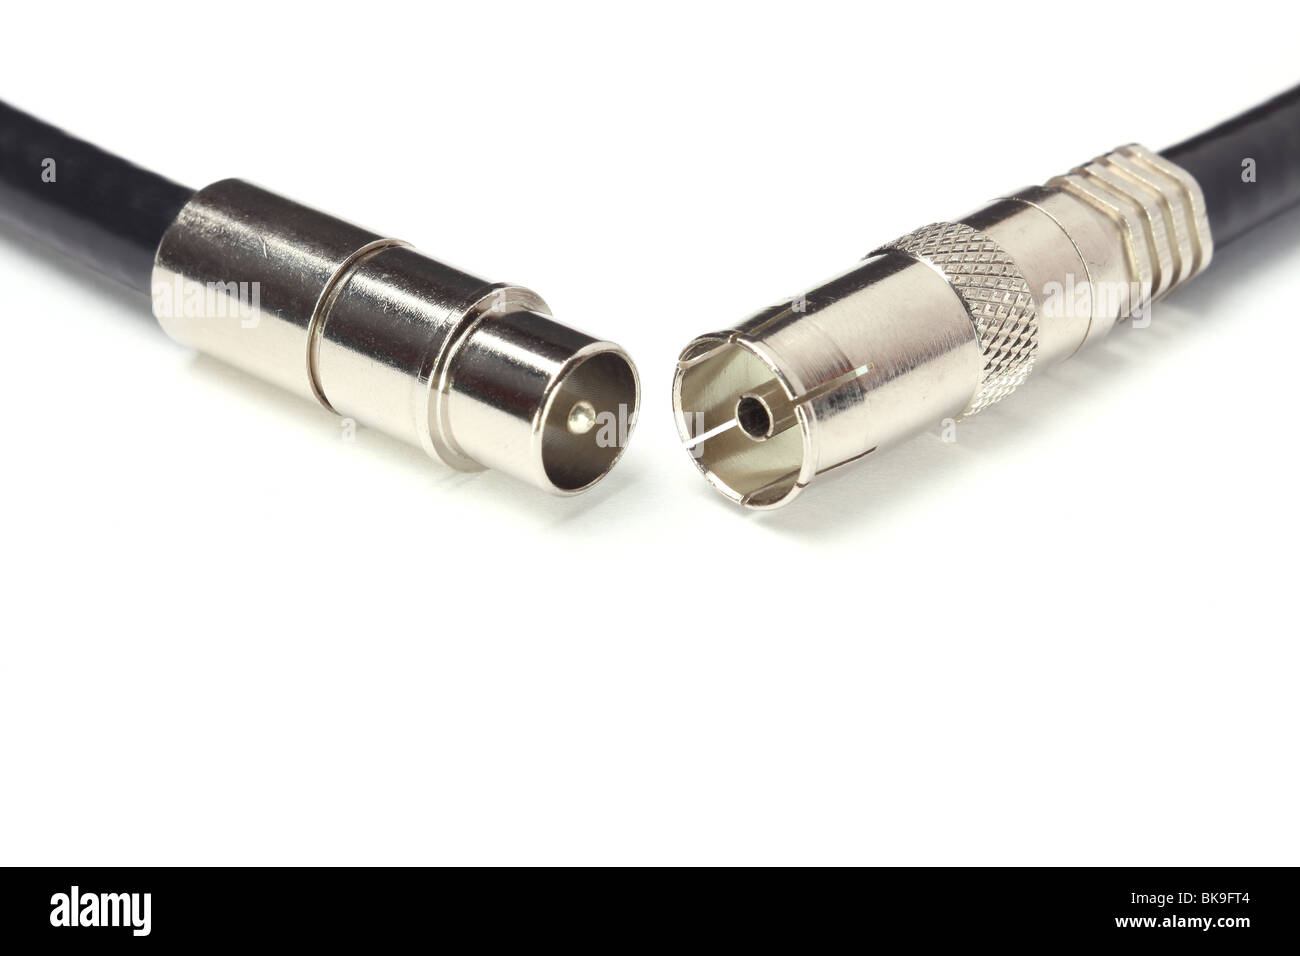 Professional cable tv connectors - Stock Image